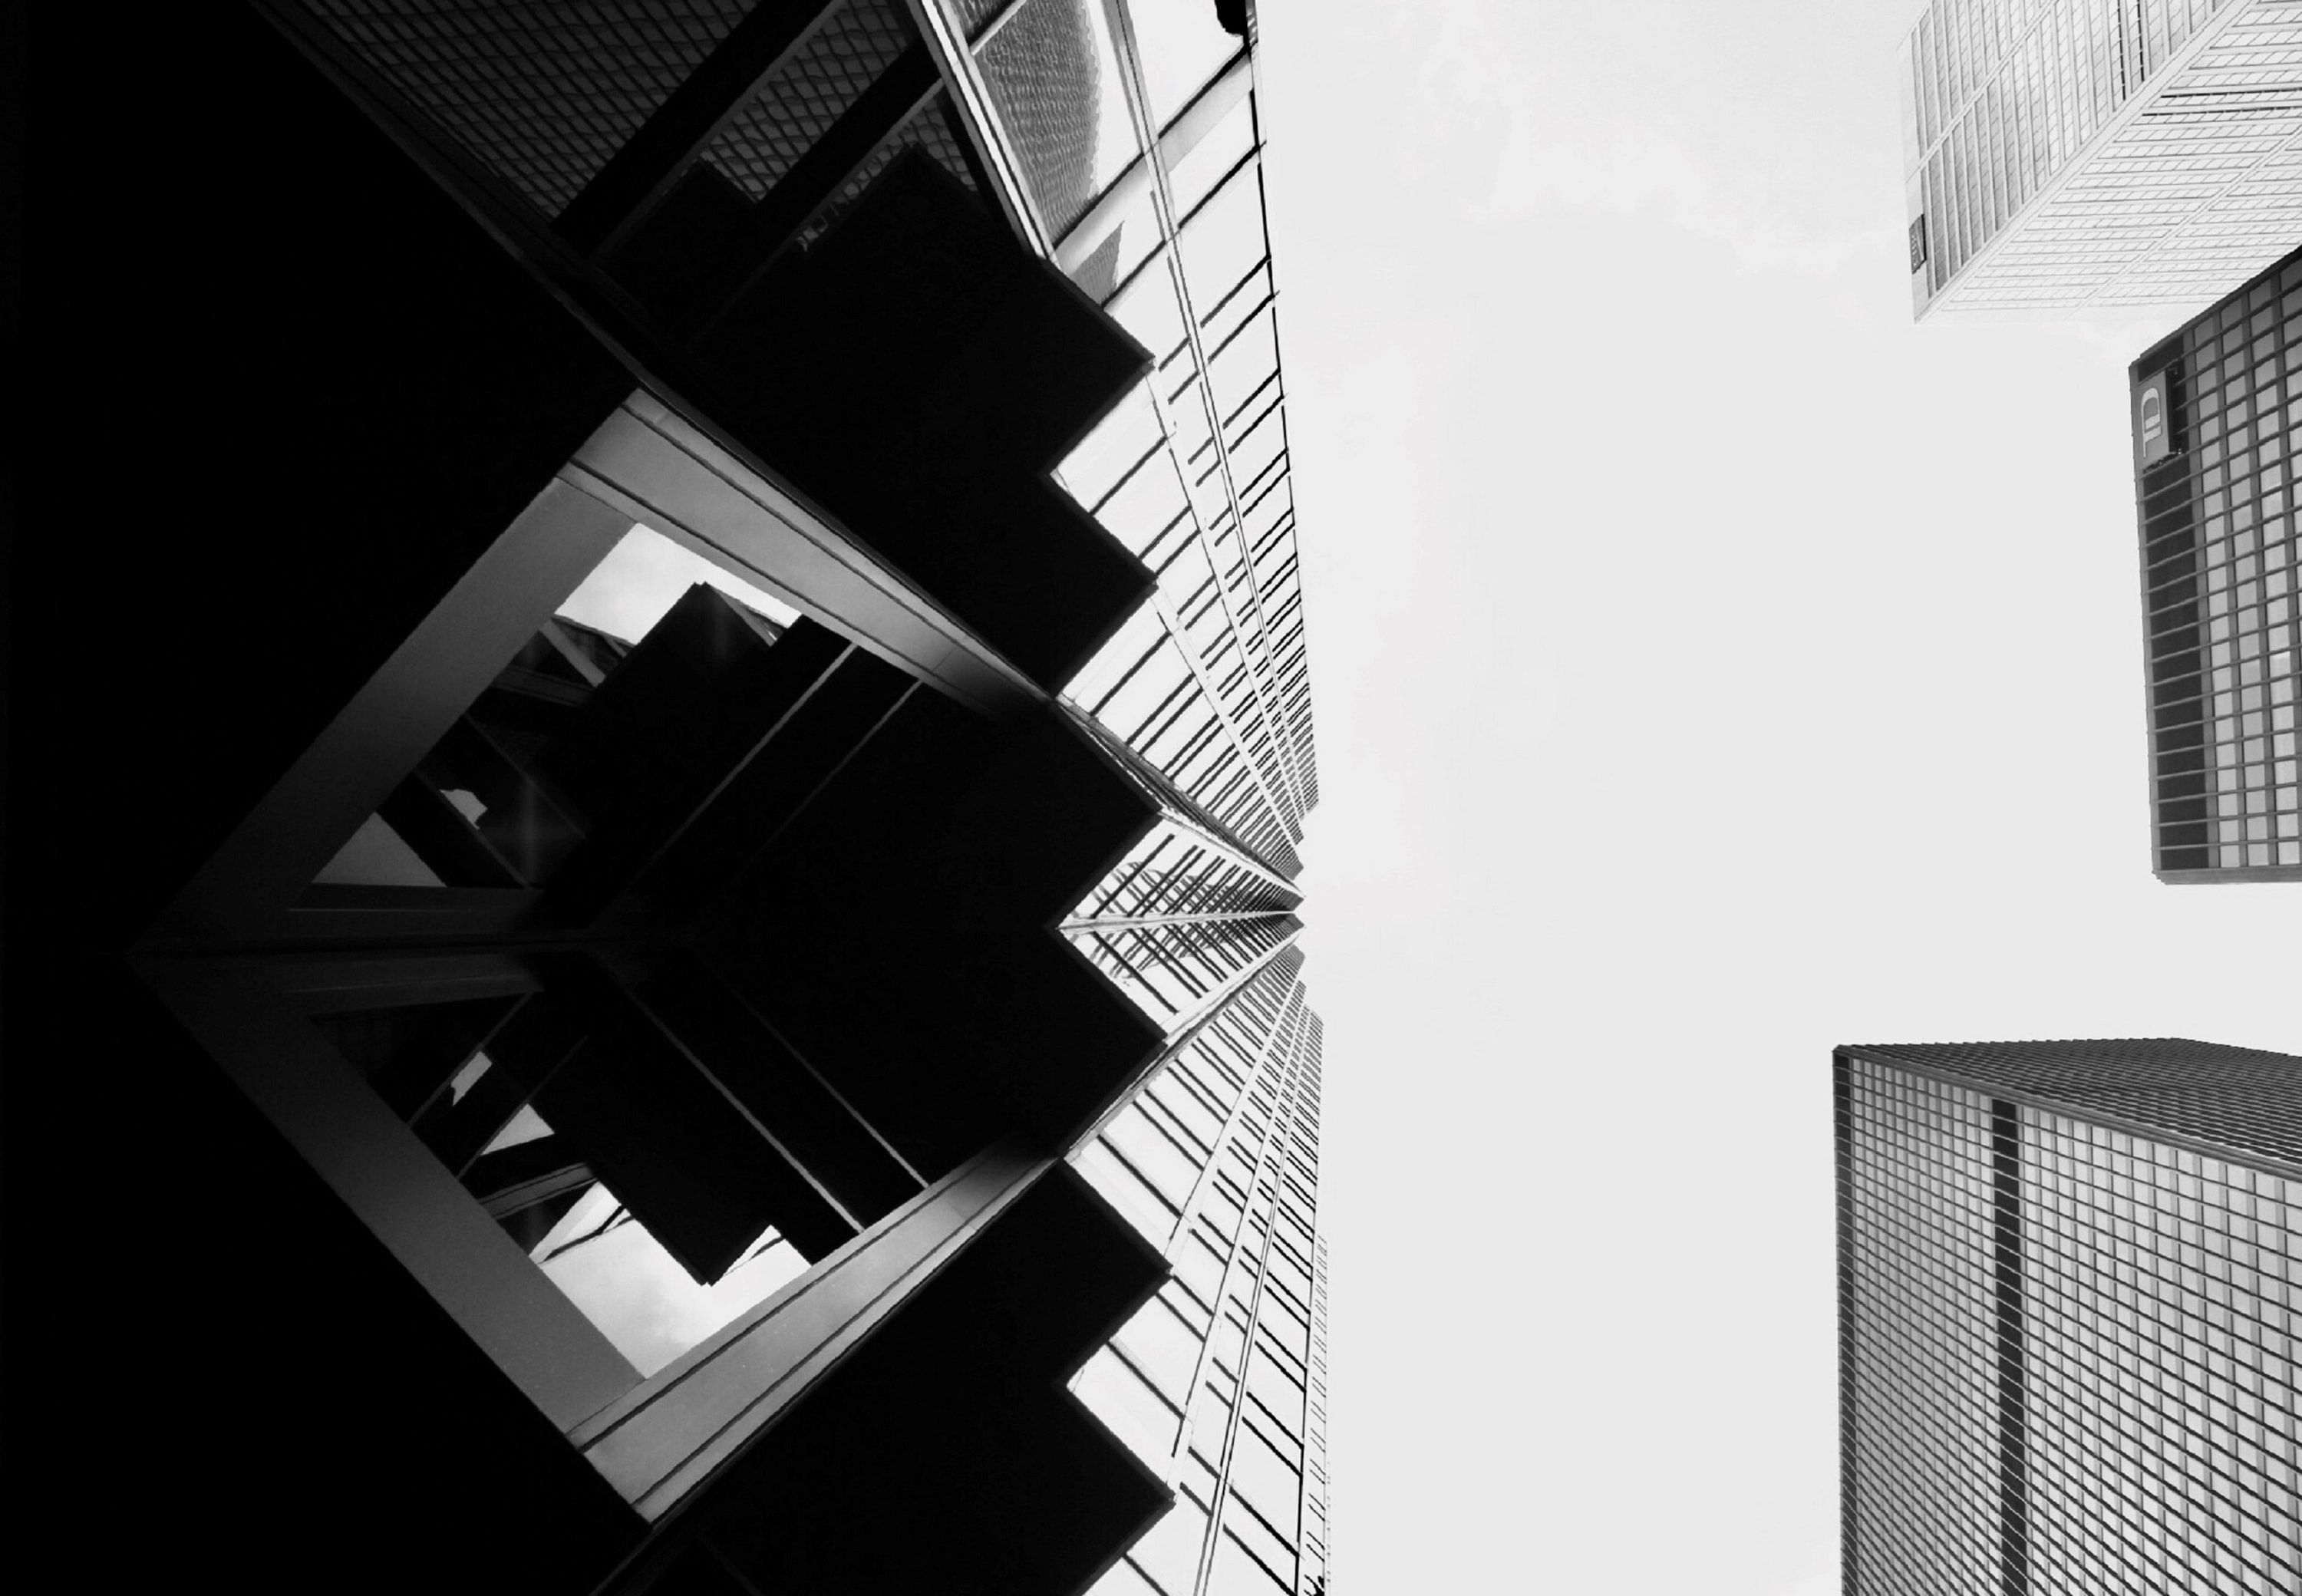 worm eye of high rise building